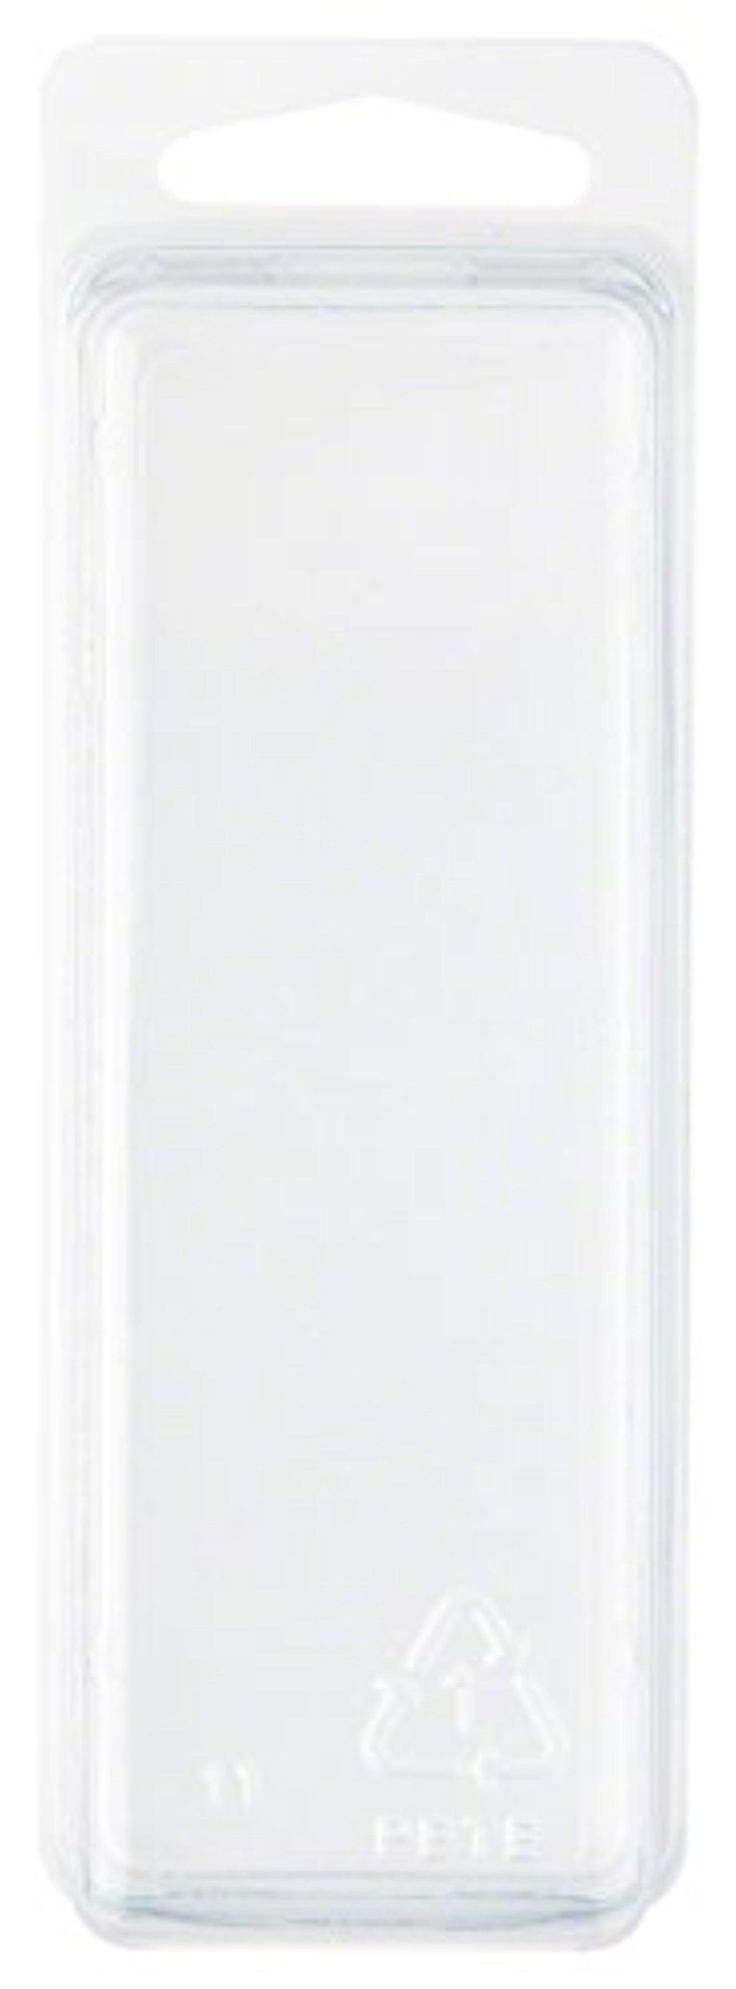 """Clear Plastic Clamshell Package / Storage Container, 4.19"""" H x 1.5"""" W x 1.25"""" D - Brought to you by Avarsha.com"""